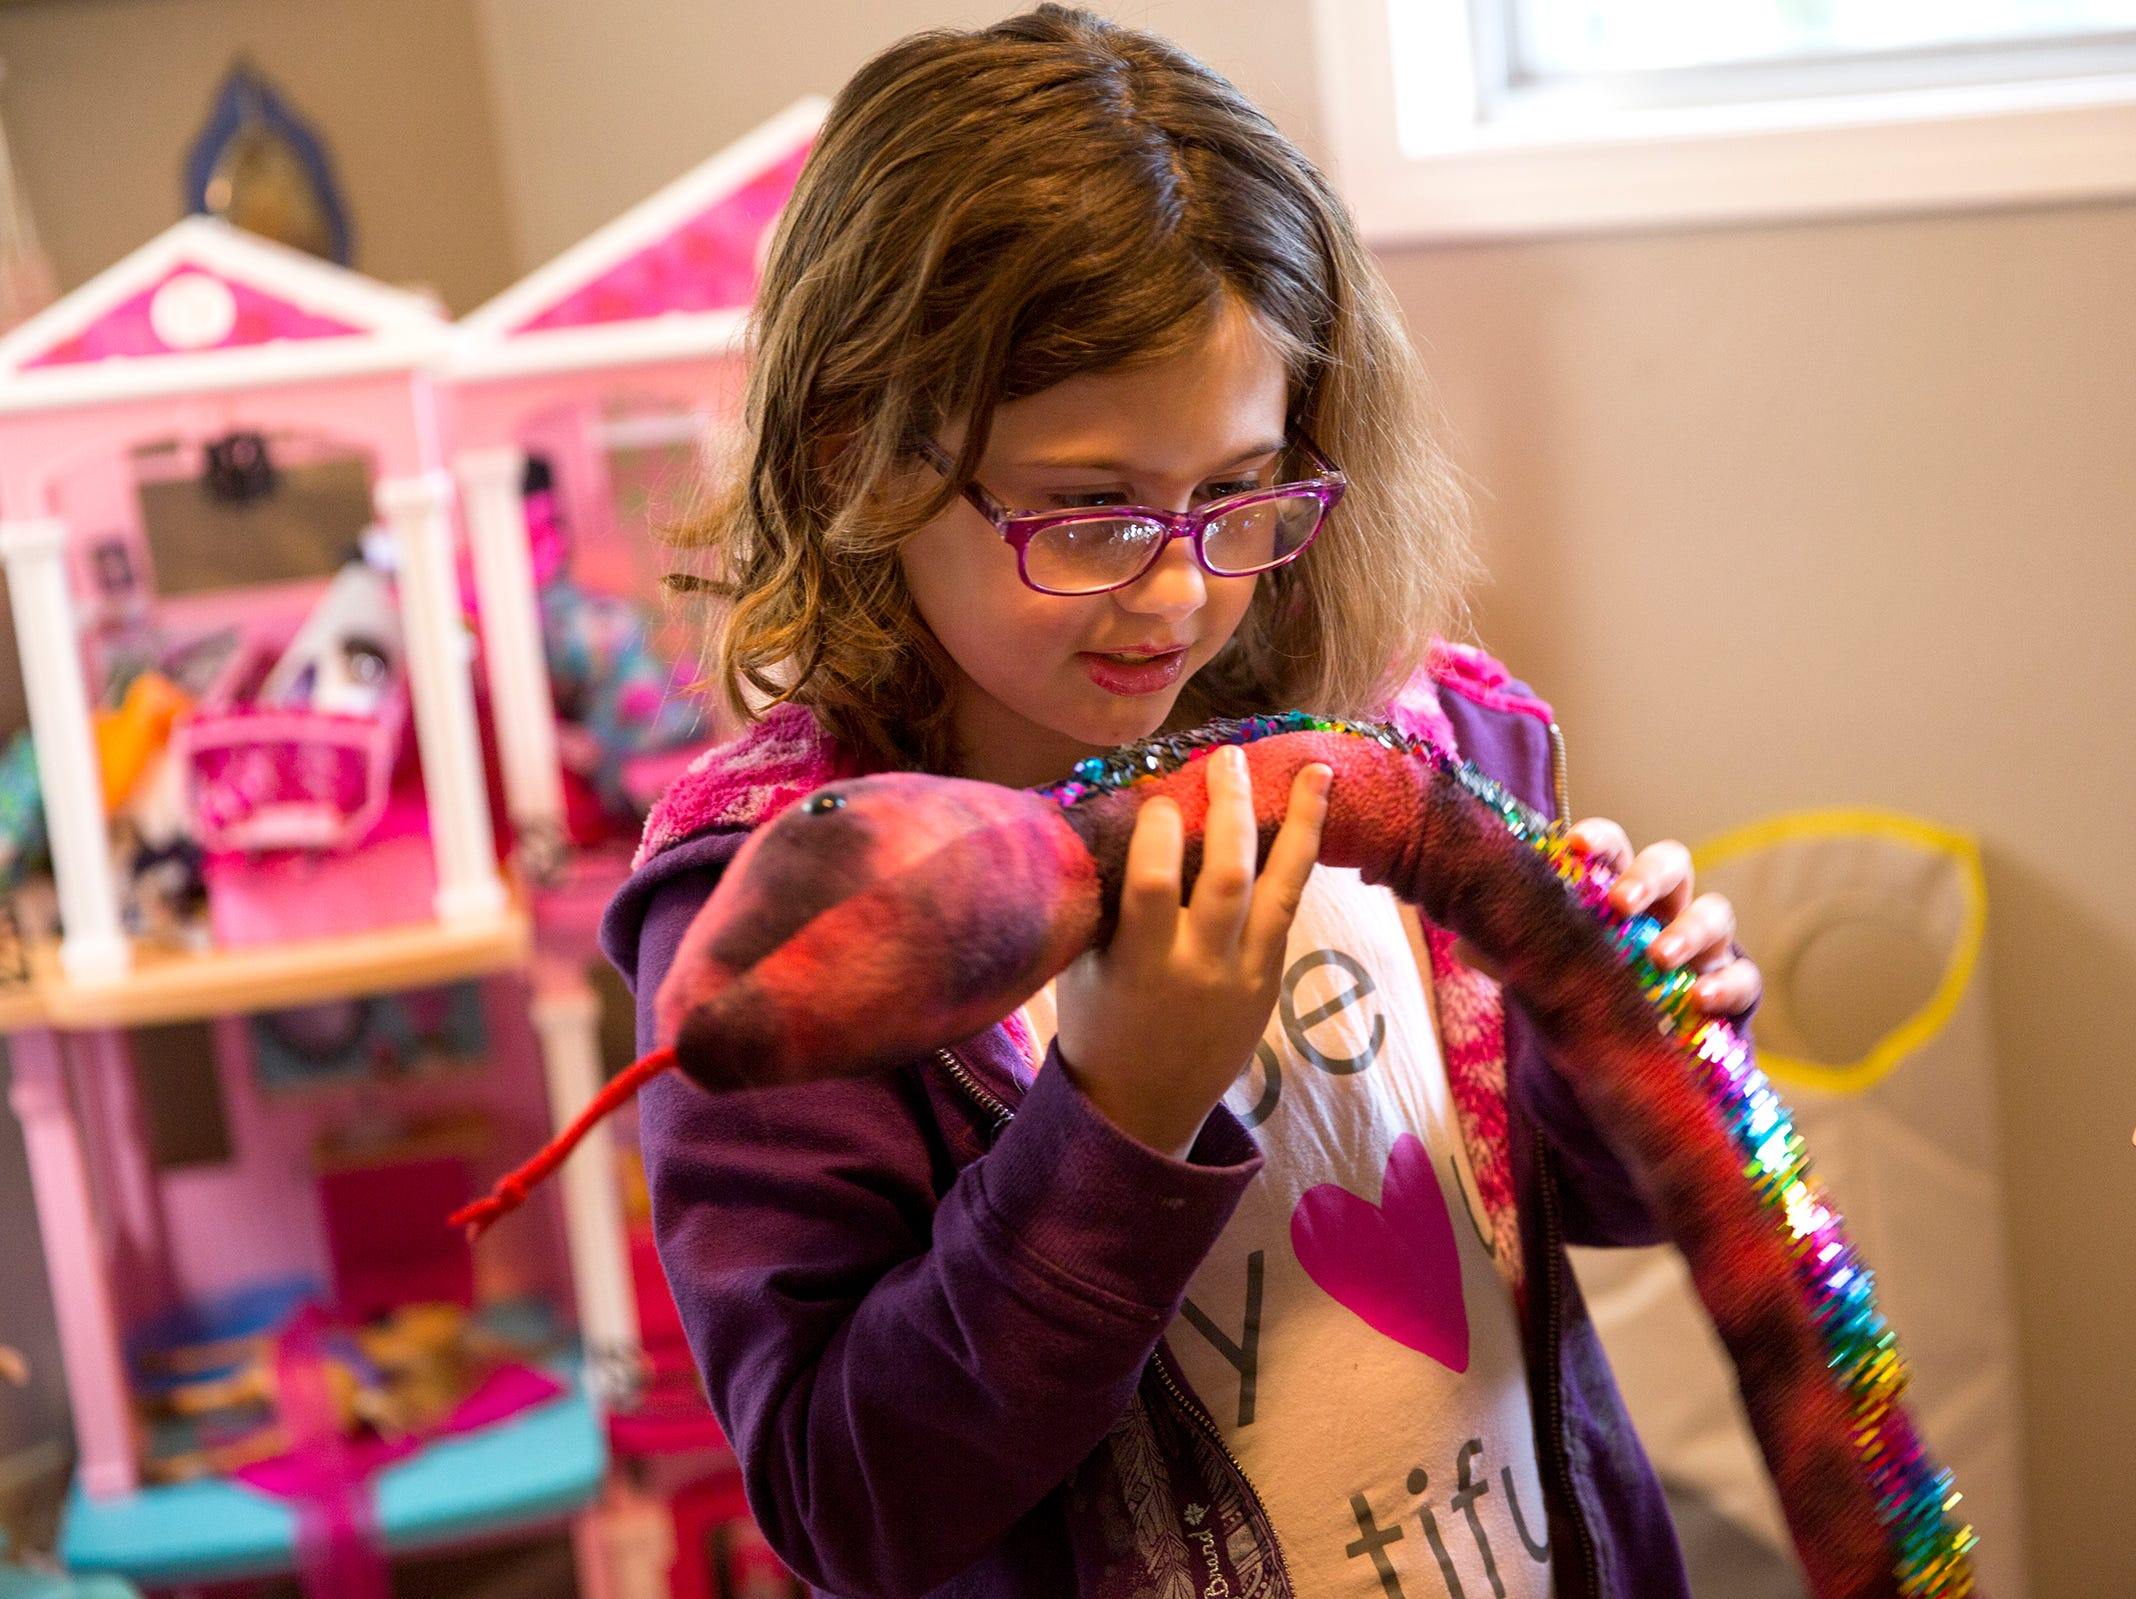 Haley Pollman, 9, looks into the reflection of her toy snake at her home in Salem on Saturday, Feb. 23, 2019. She has a rare nervous system disorder that has caused her eyesight to deteriorate.